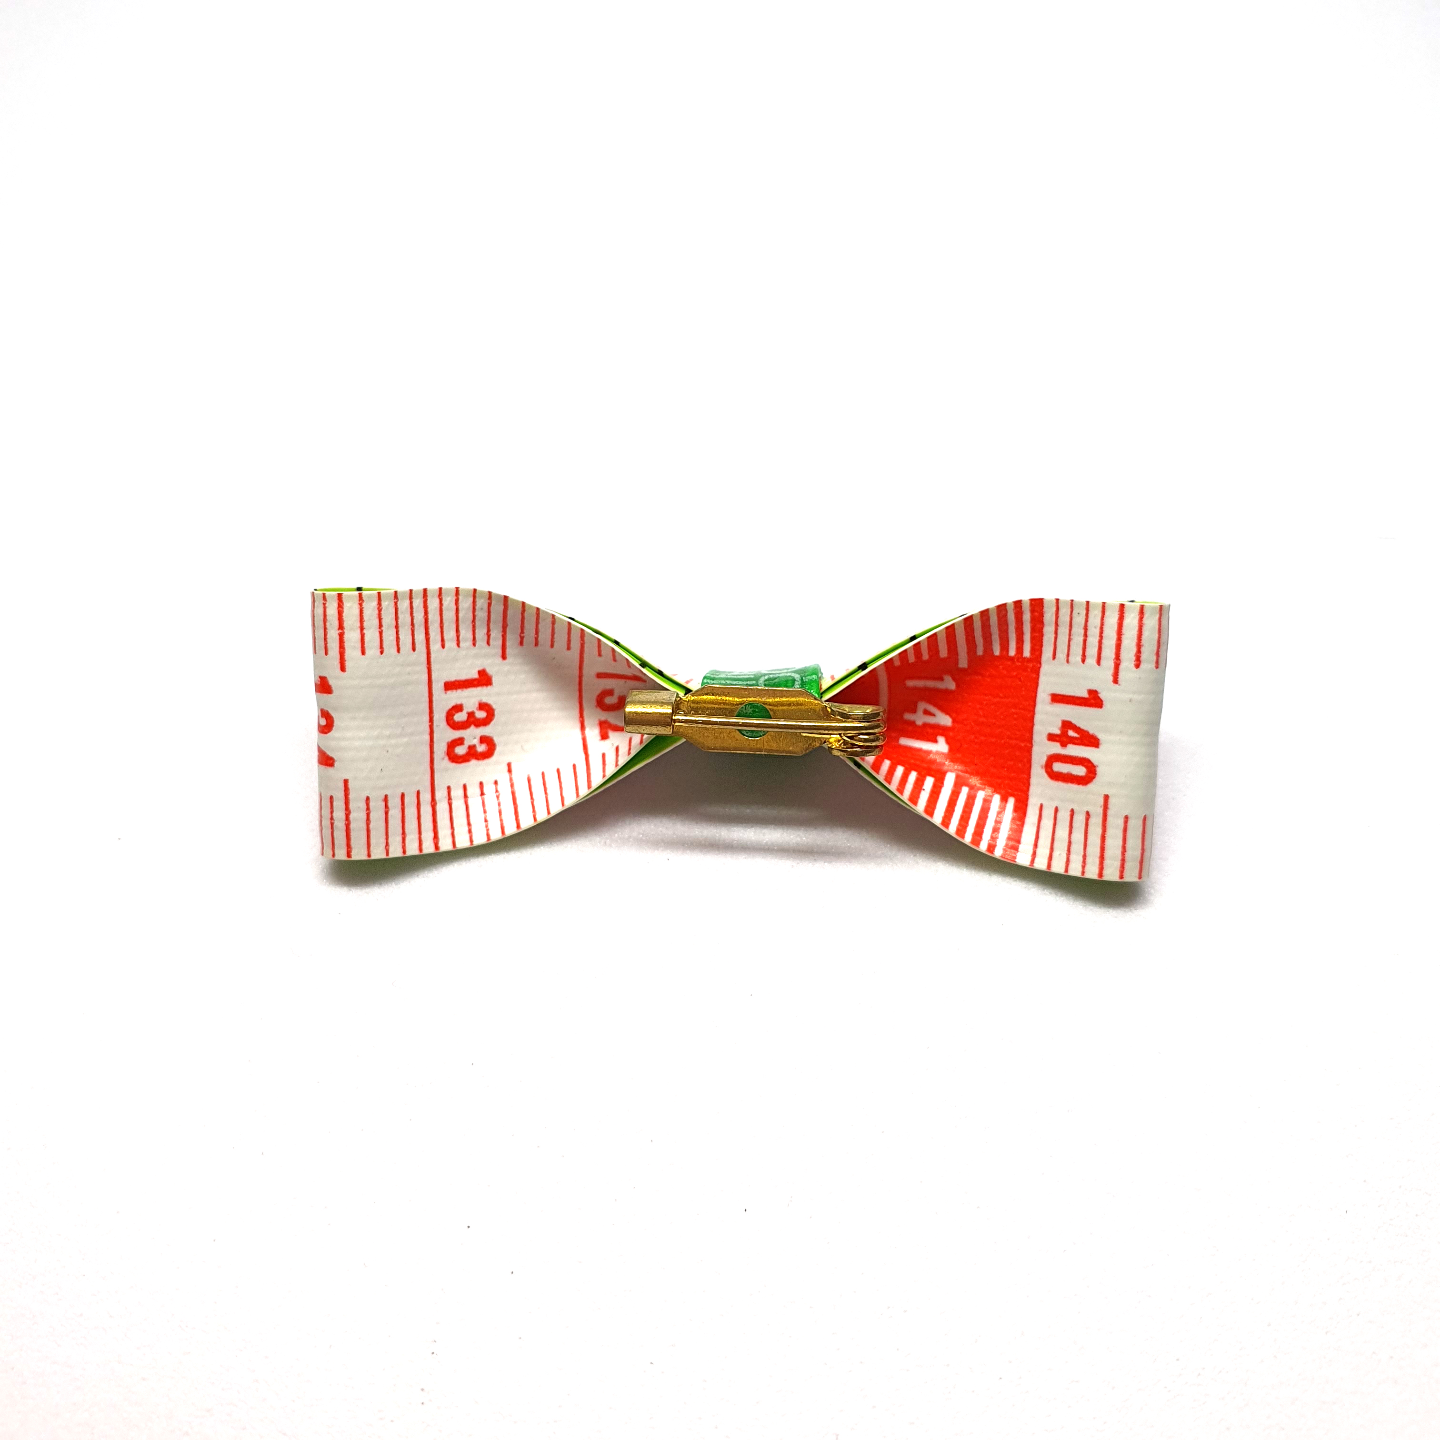 Handmade Accessories Measuring Tape Ribbon Brooches Orange 2 by Doe & Audrey